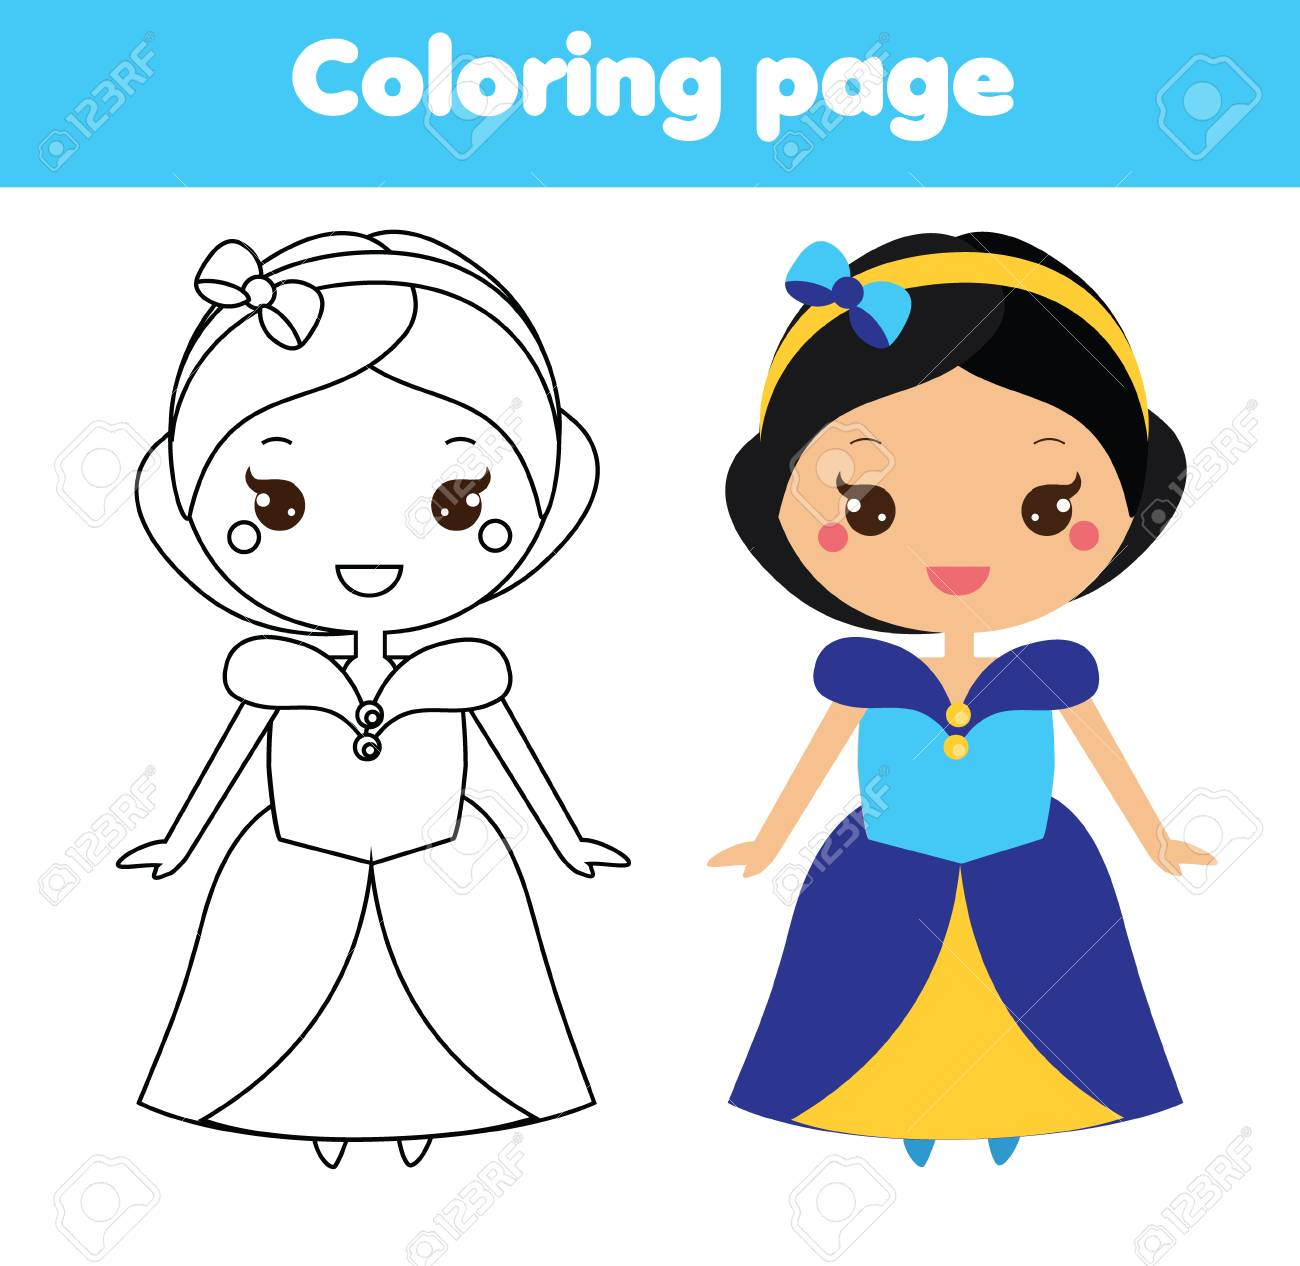 Princess Coloring Pages - Best Coloring Pages For Kids | 1266x1300